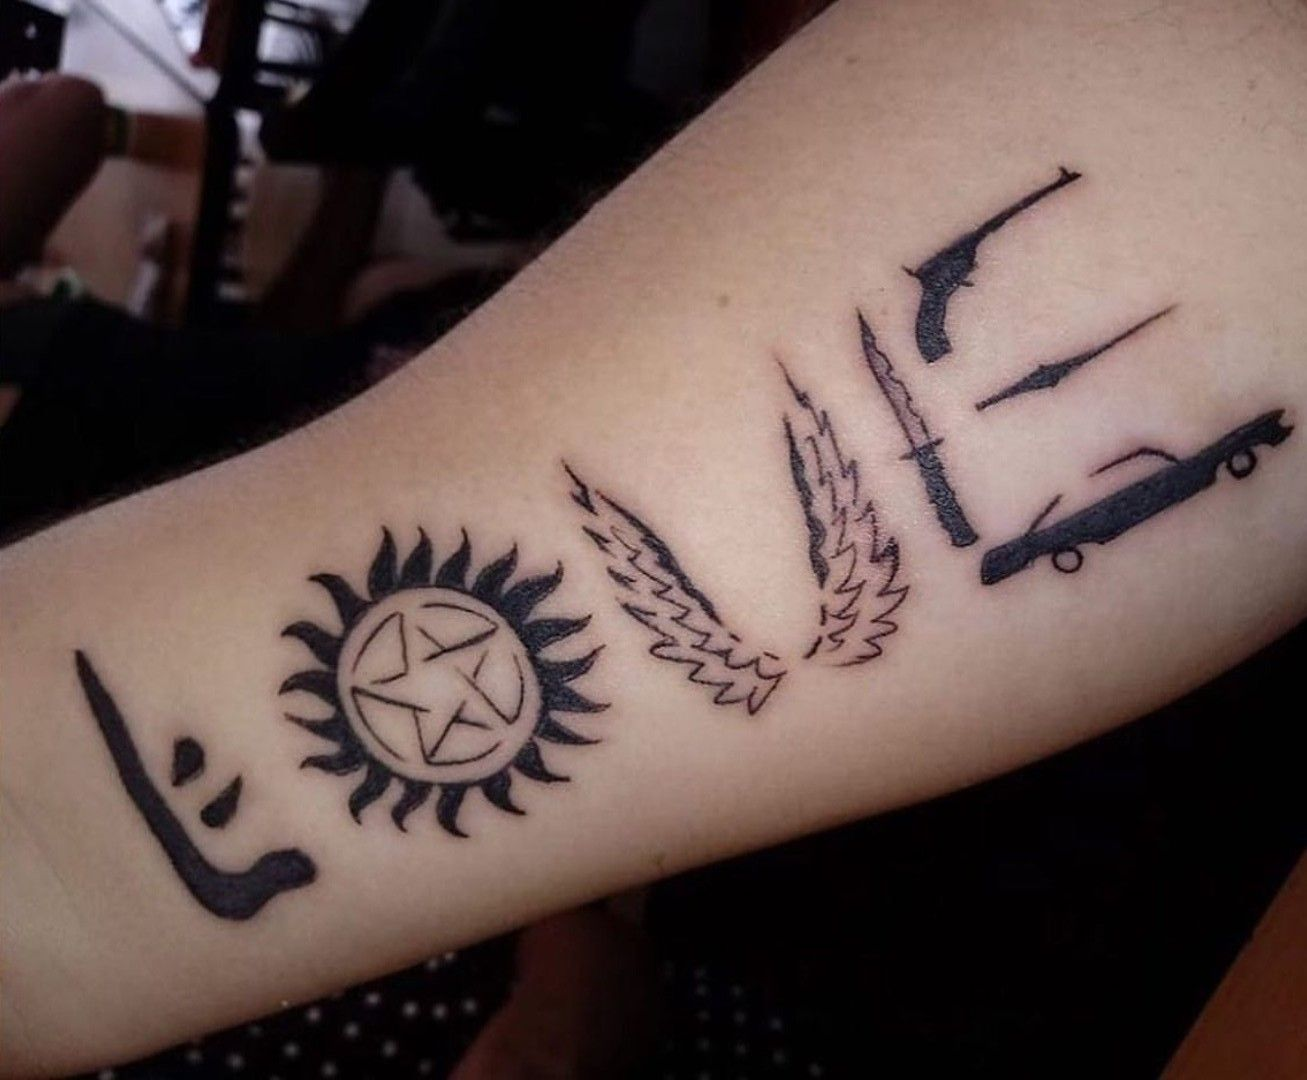 This would be a good Supernatural tattoo. … Supernatural